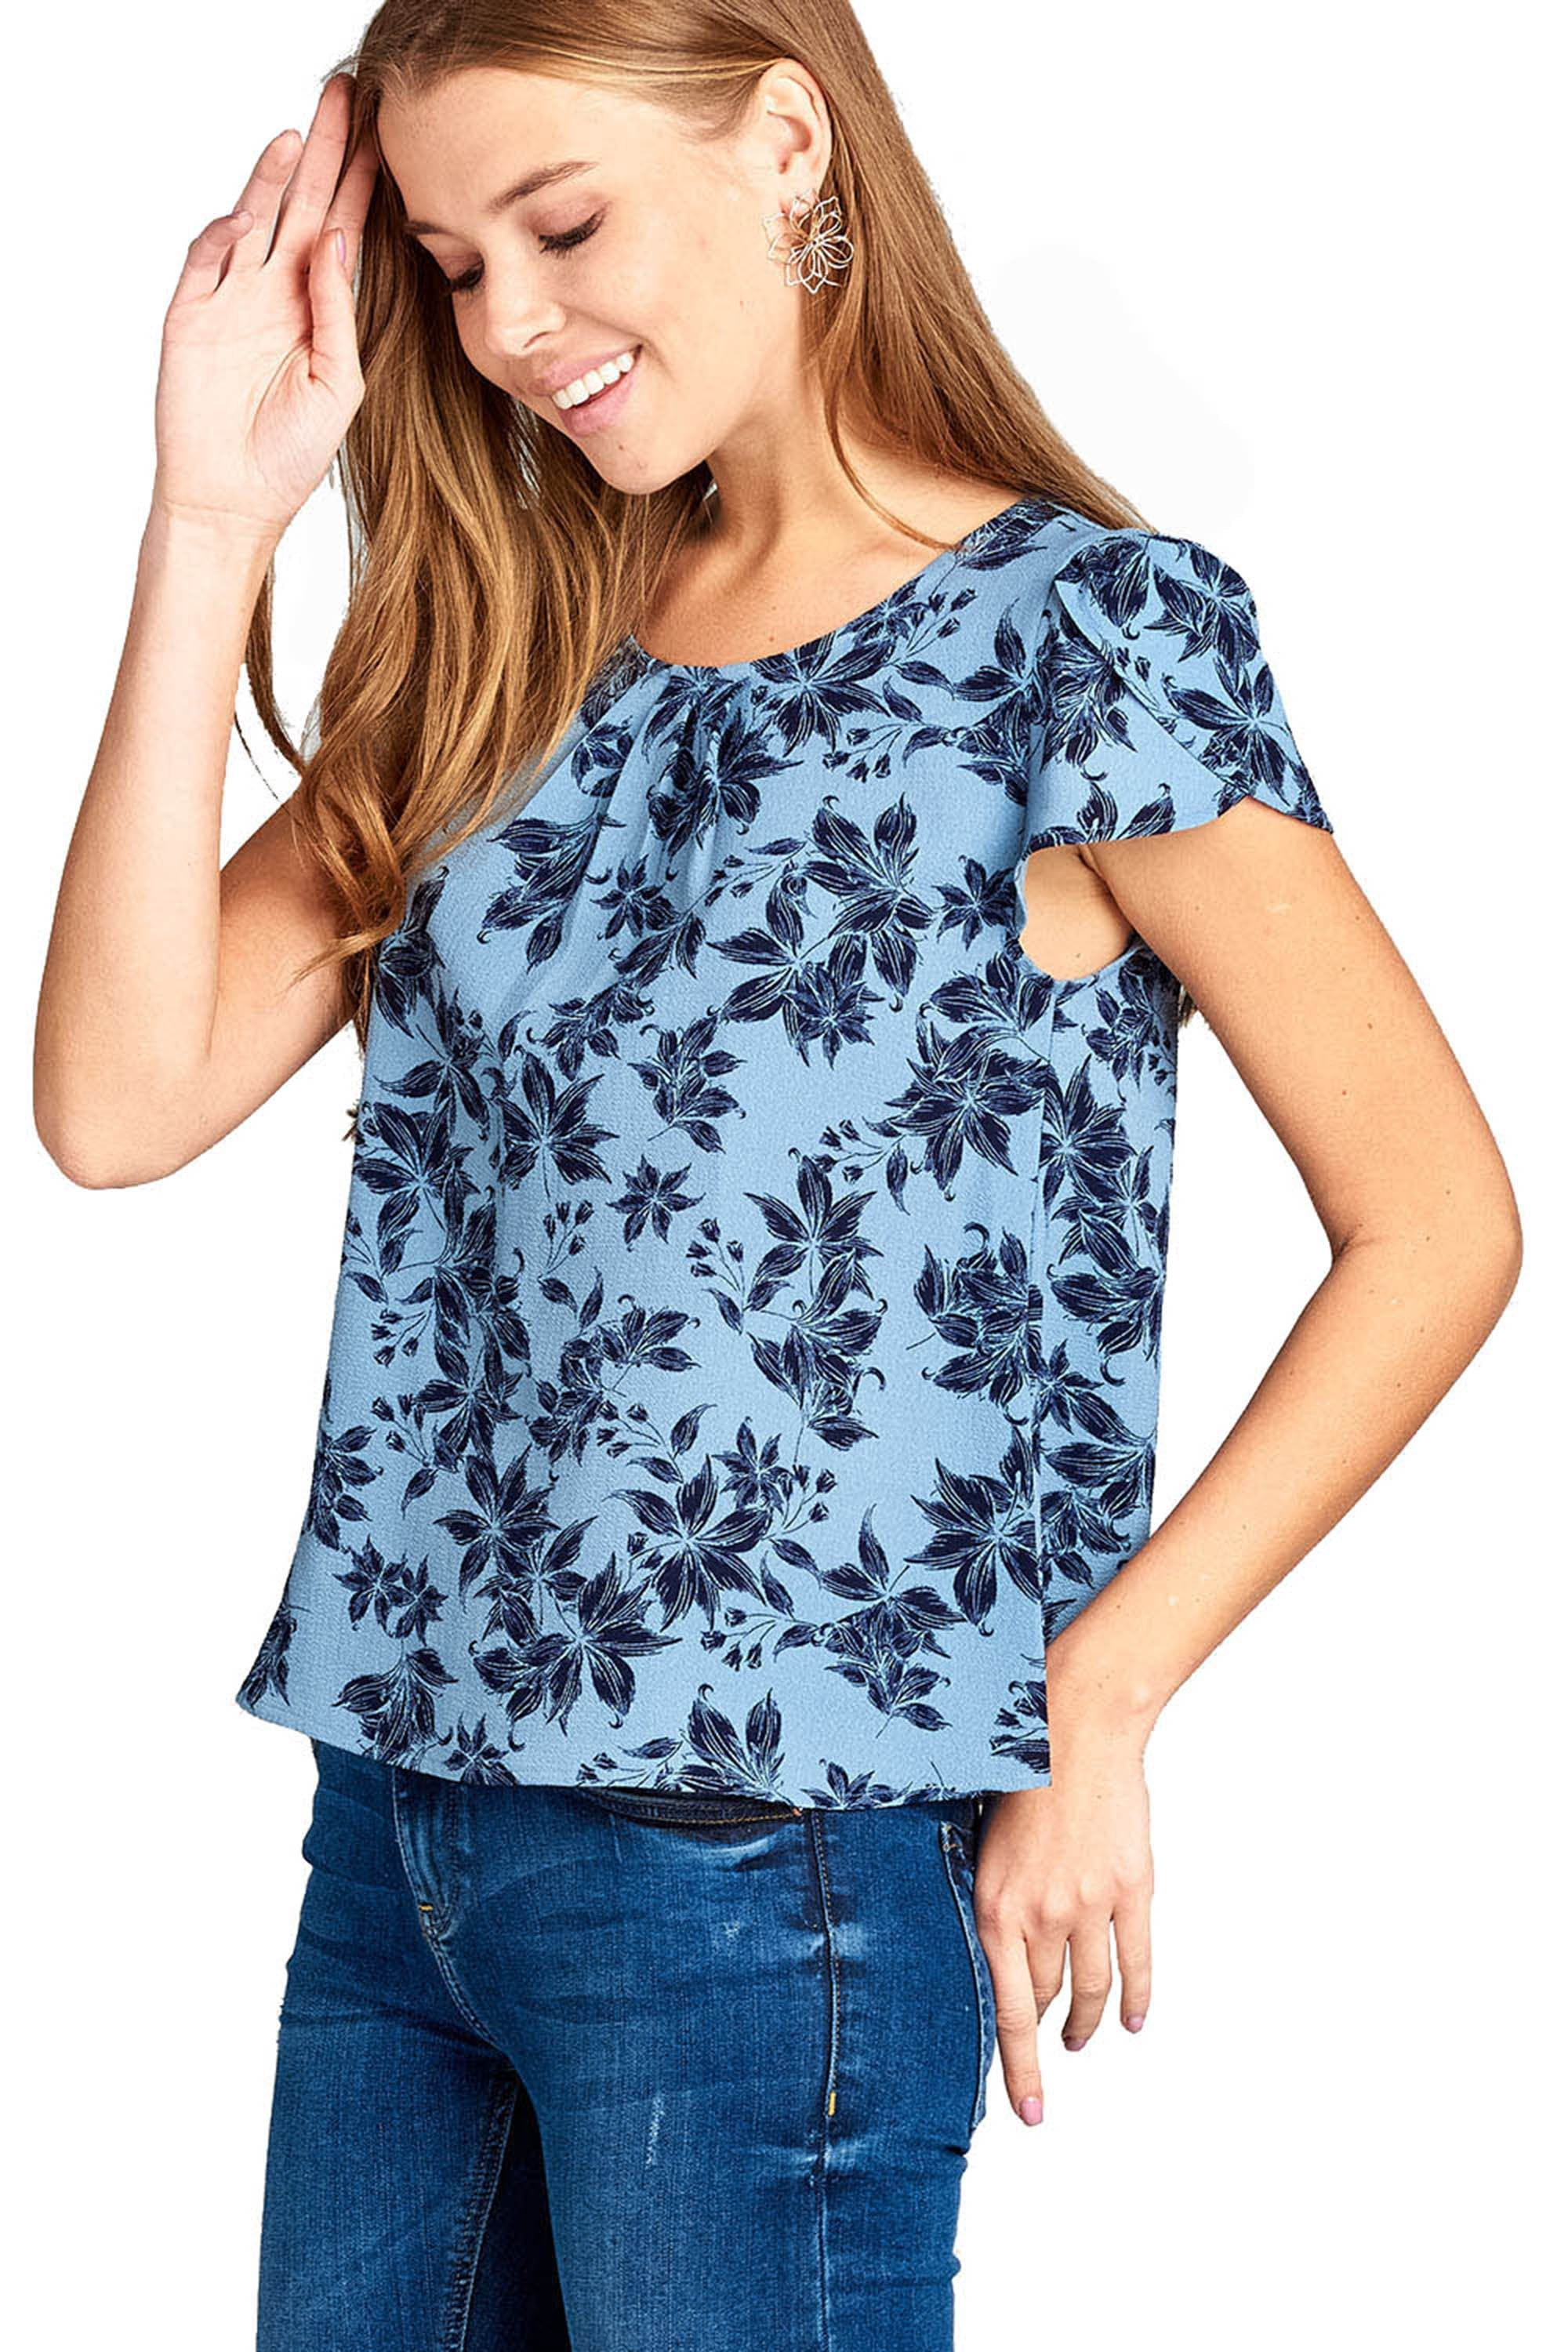 Khanomak Women's Short Sleeve Floral Criss Cross V-Neck Back Blouse